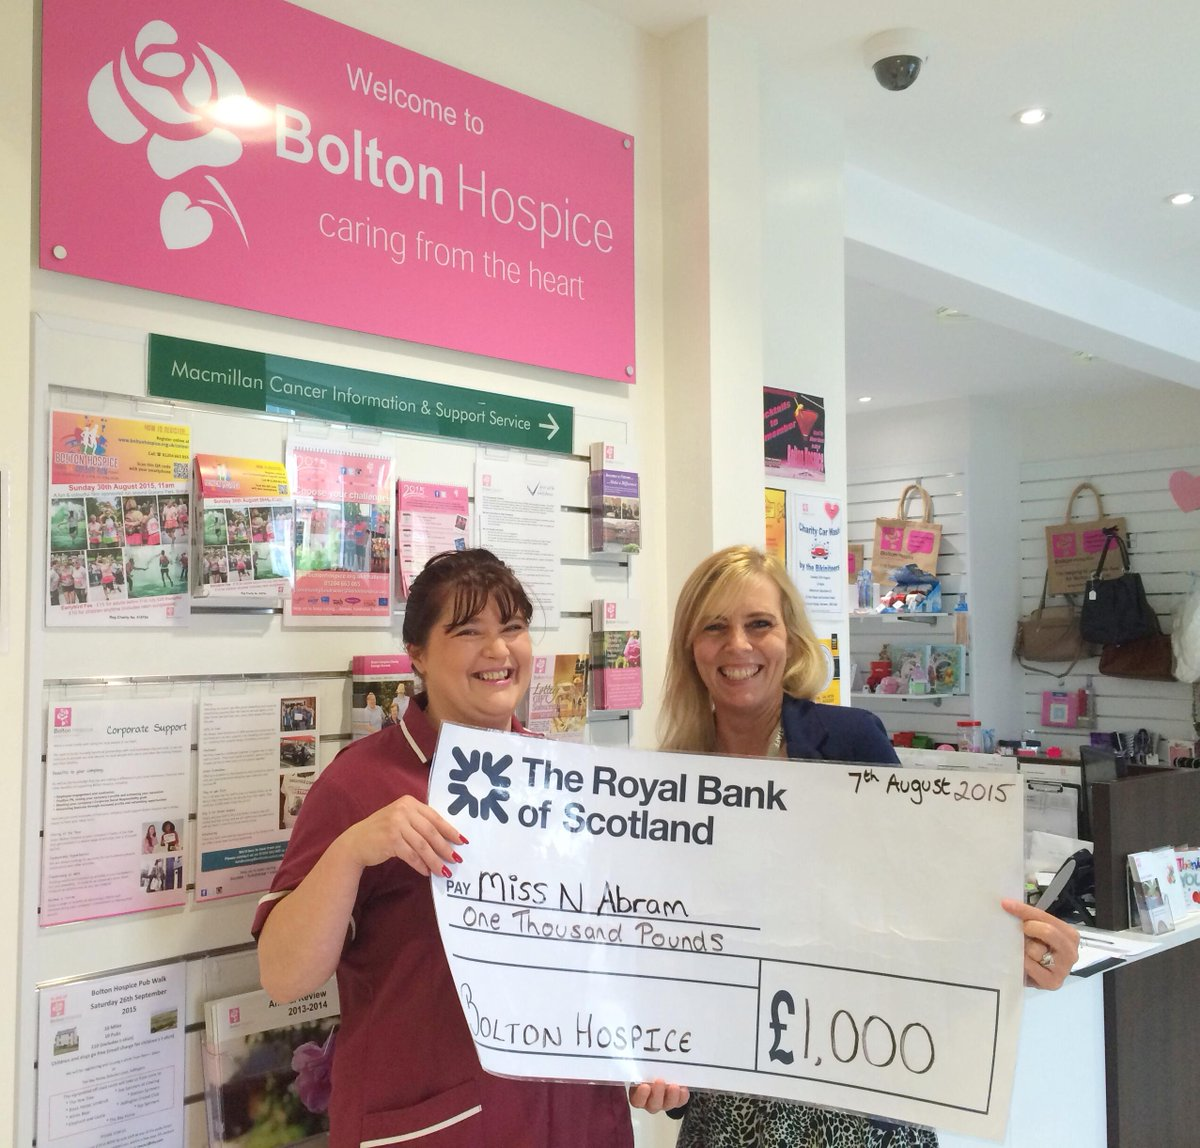 Bolton Hospice on Twitter: